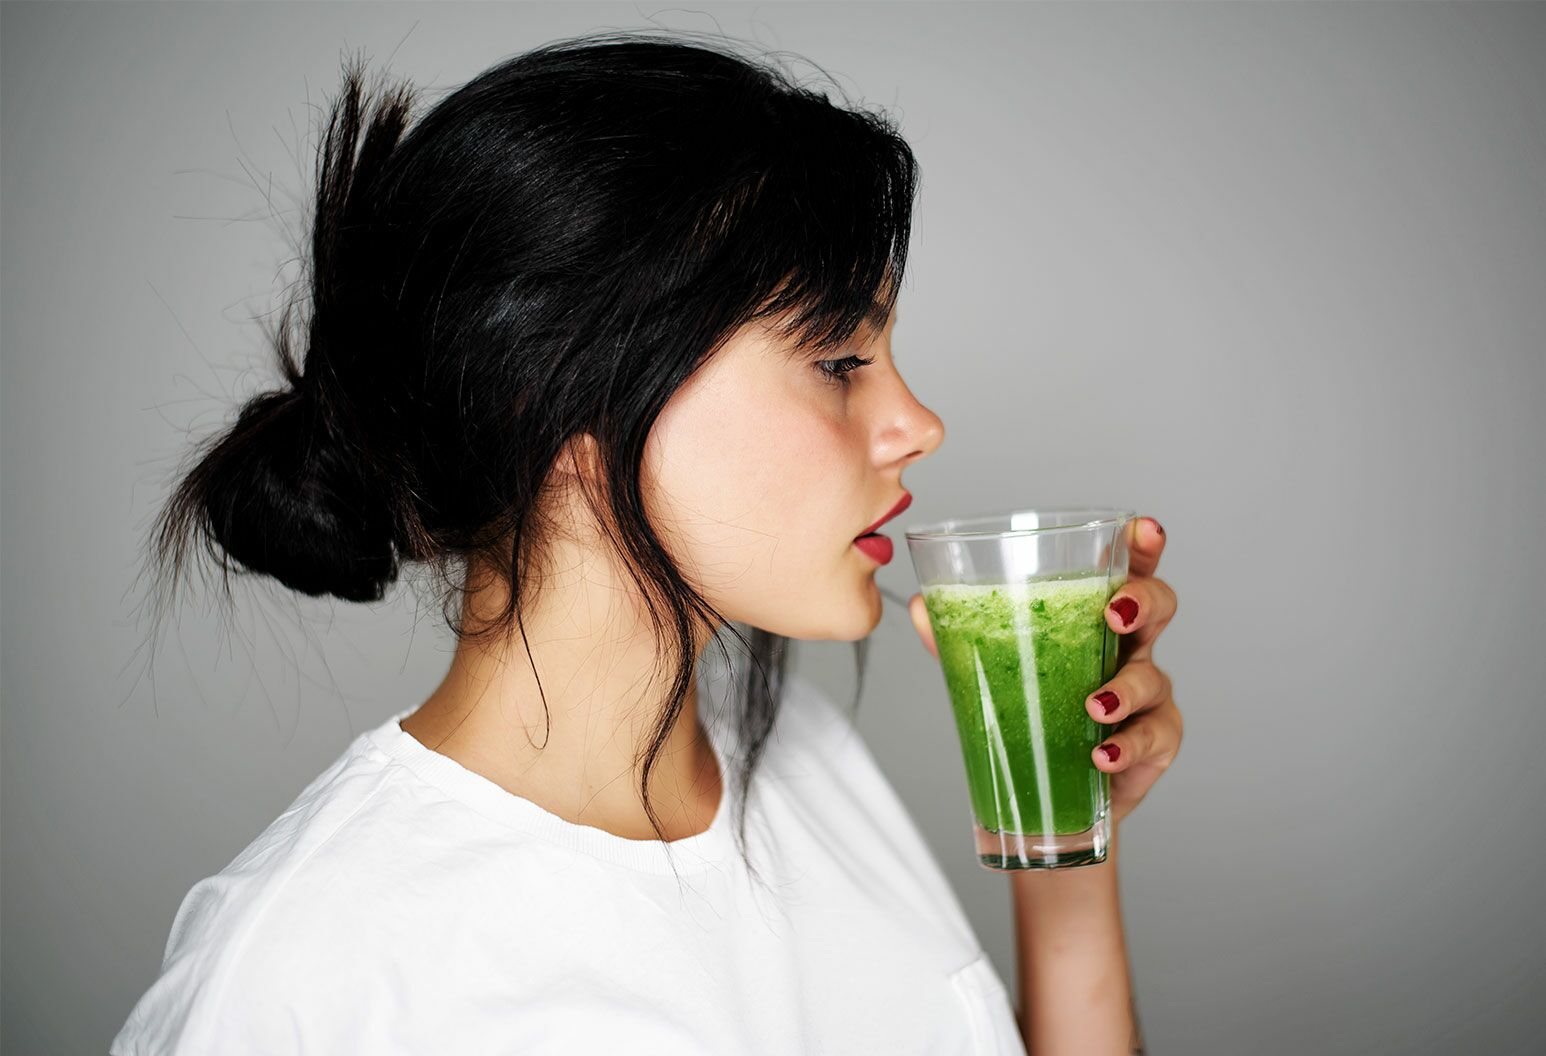 A young woman with long black hair tied up in a white tshirt holds a glass of green fluid close to her lips.